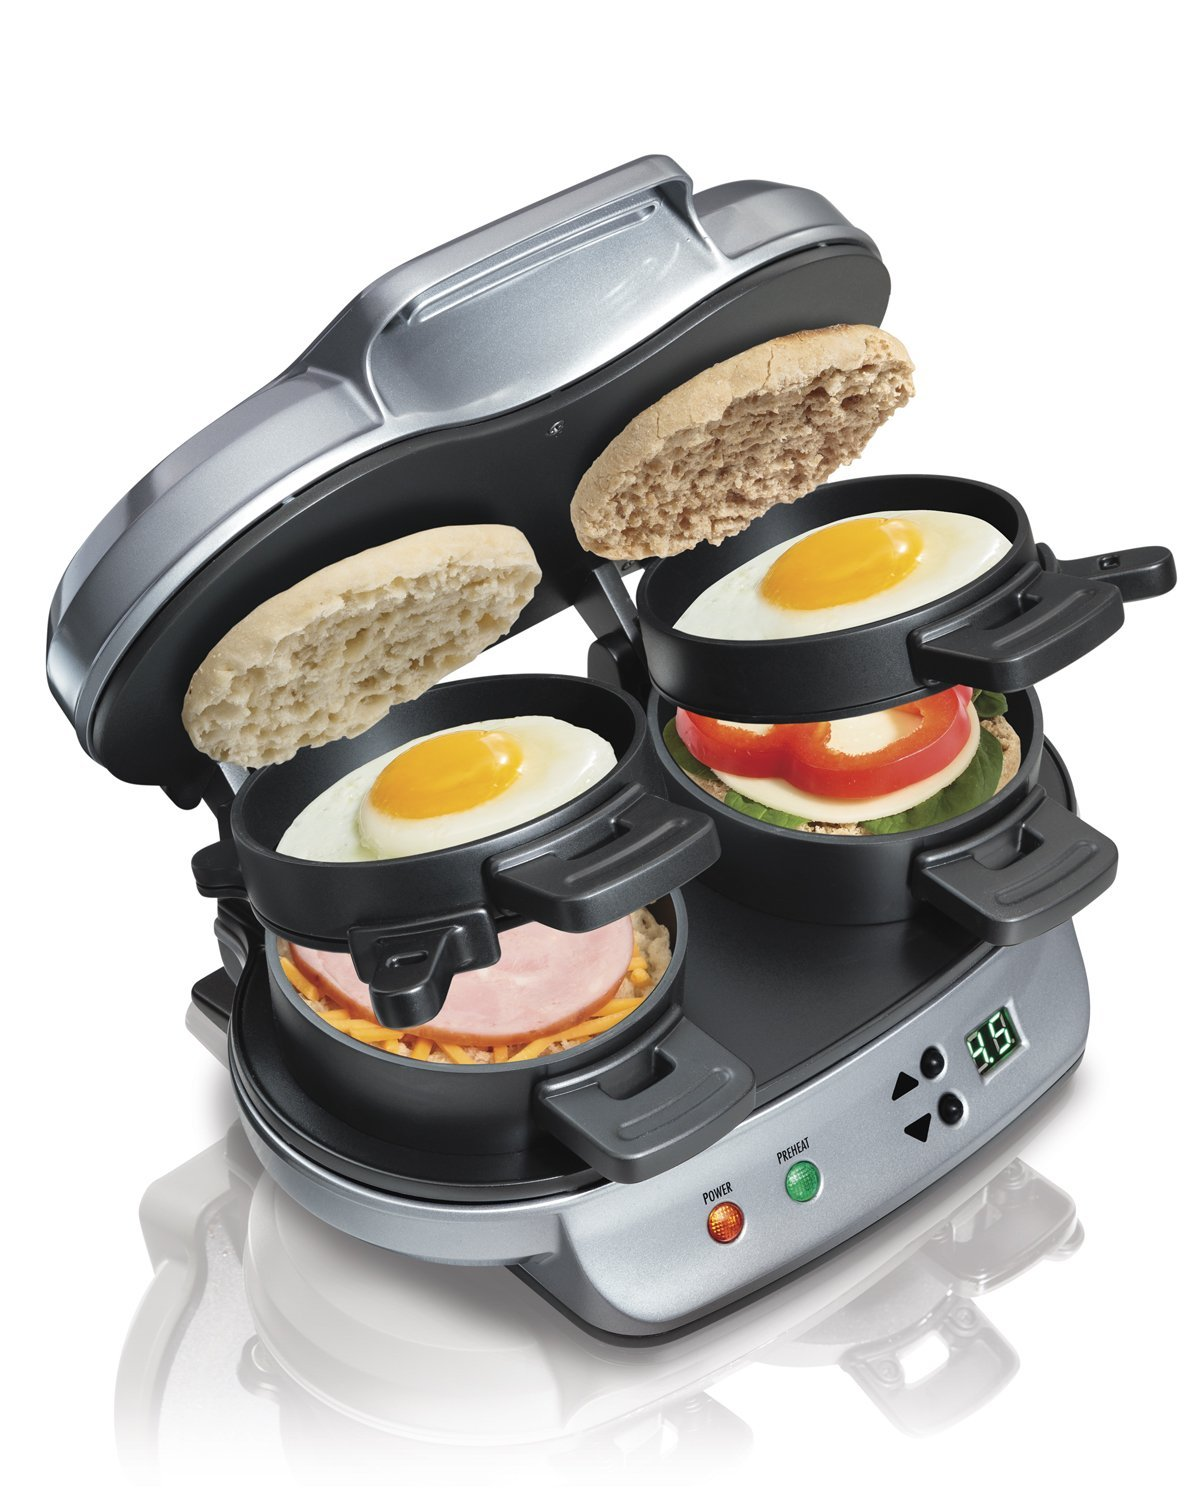 Hamilton Beach 25490a Sandwich Maker